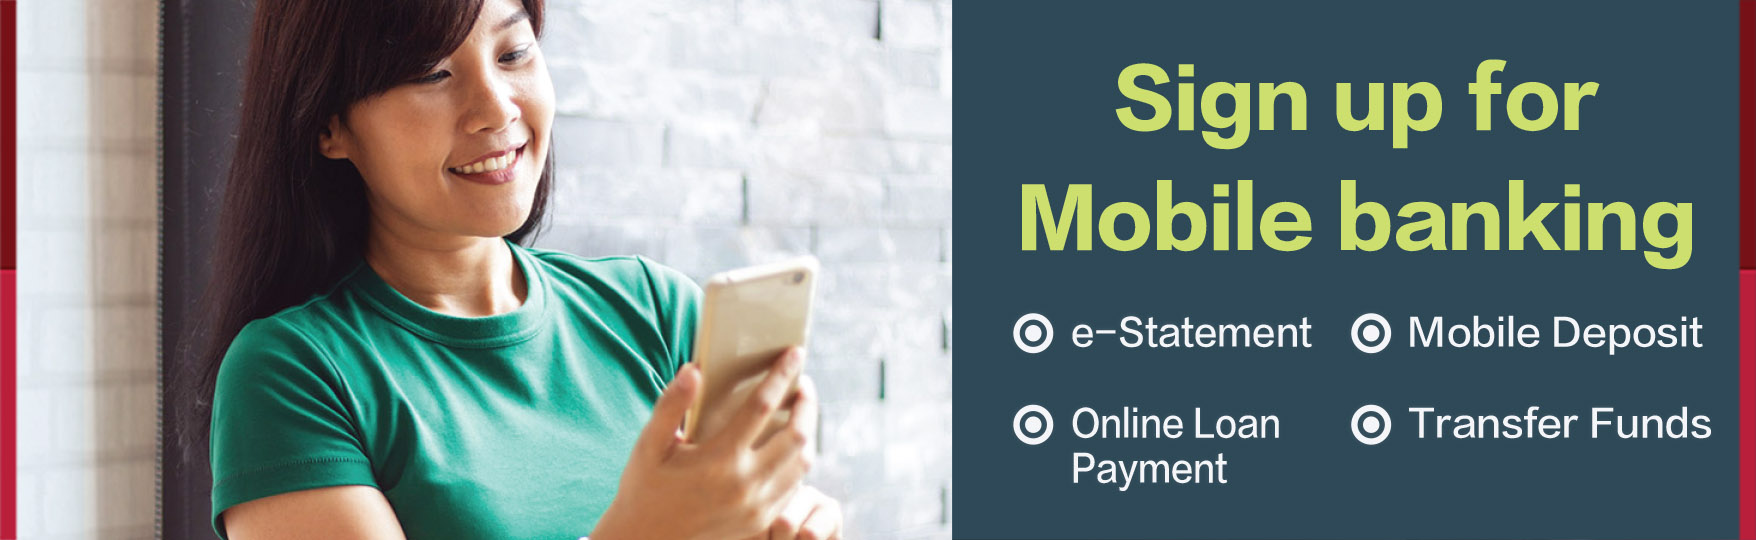 Sign up for mobile banking - E-statement - Mobile deposit - Online loan payment - Transfer Funds